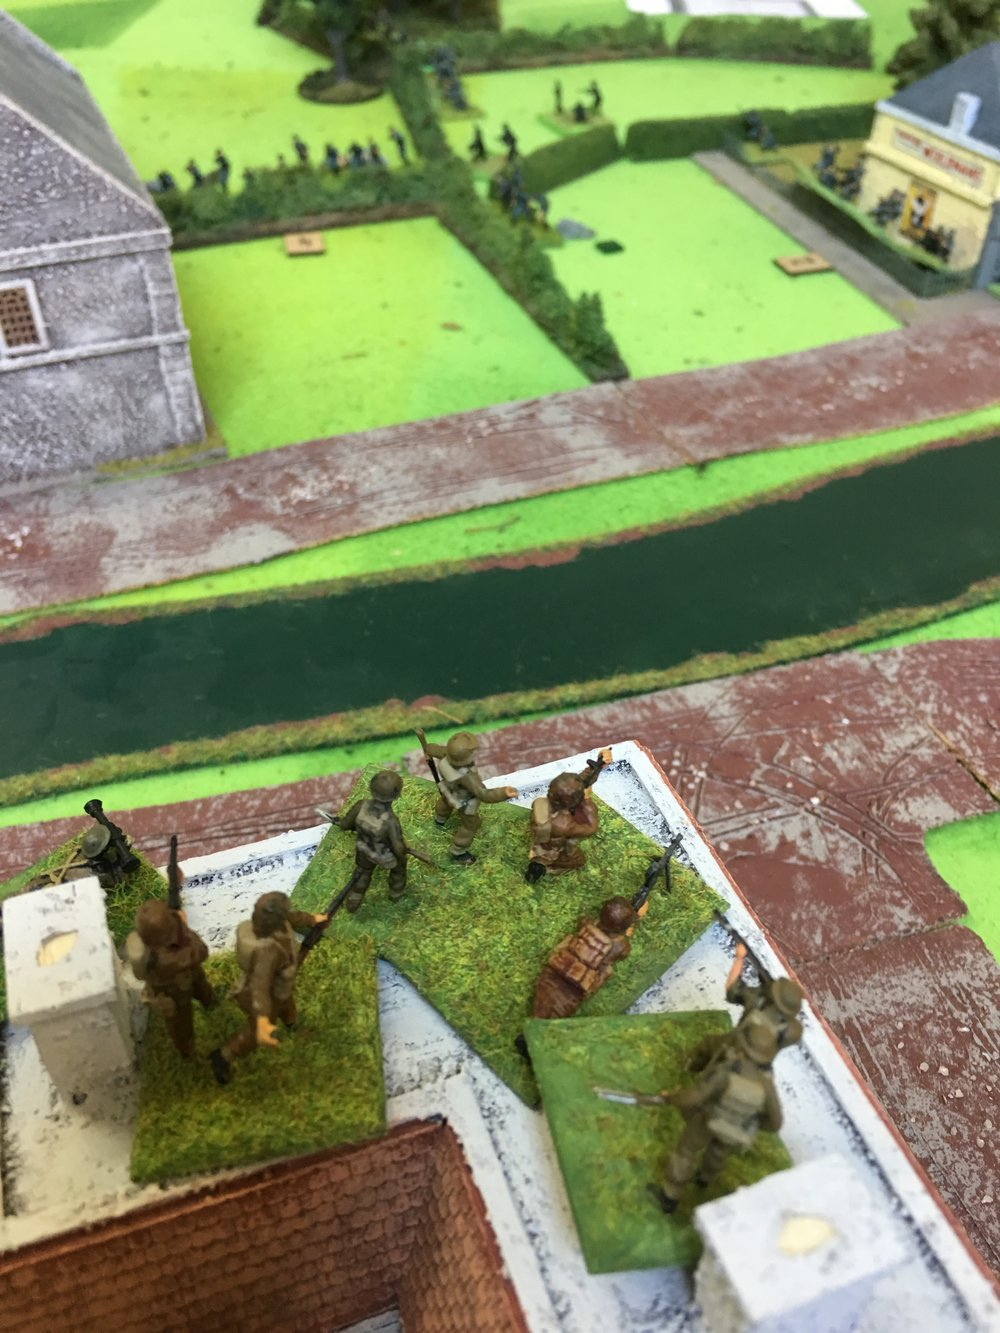 British defenders firing from the rooftops at the German attackers in the distance